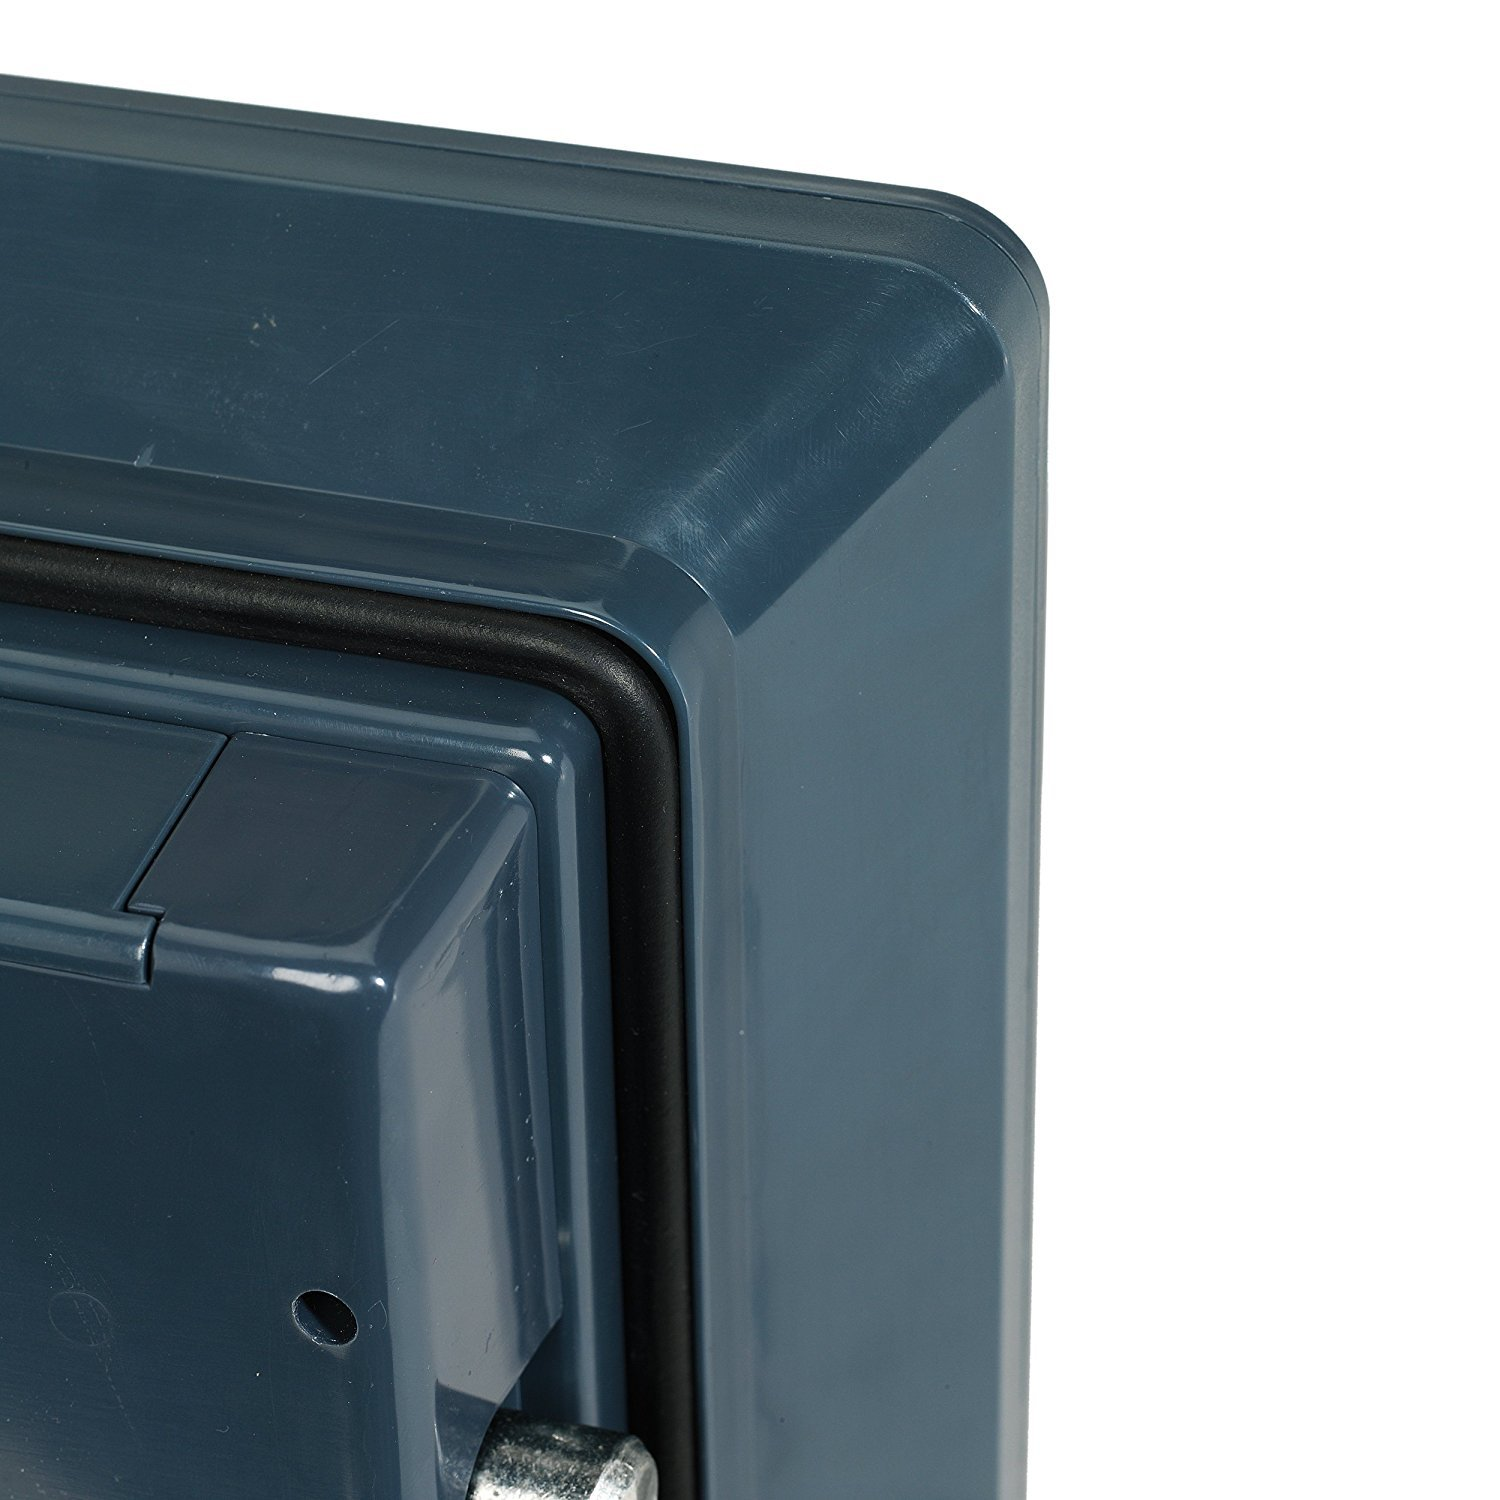 First Alert 2092DF Waterproof and Fire-Resistant Digital Safe, 1.31 Cubic Feet by First Alert (Image #6)